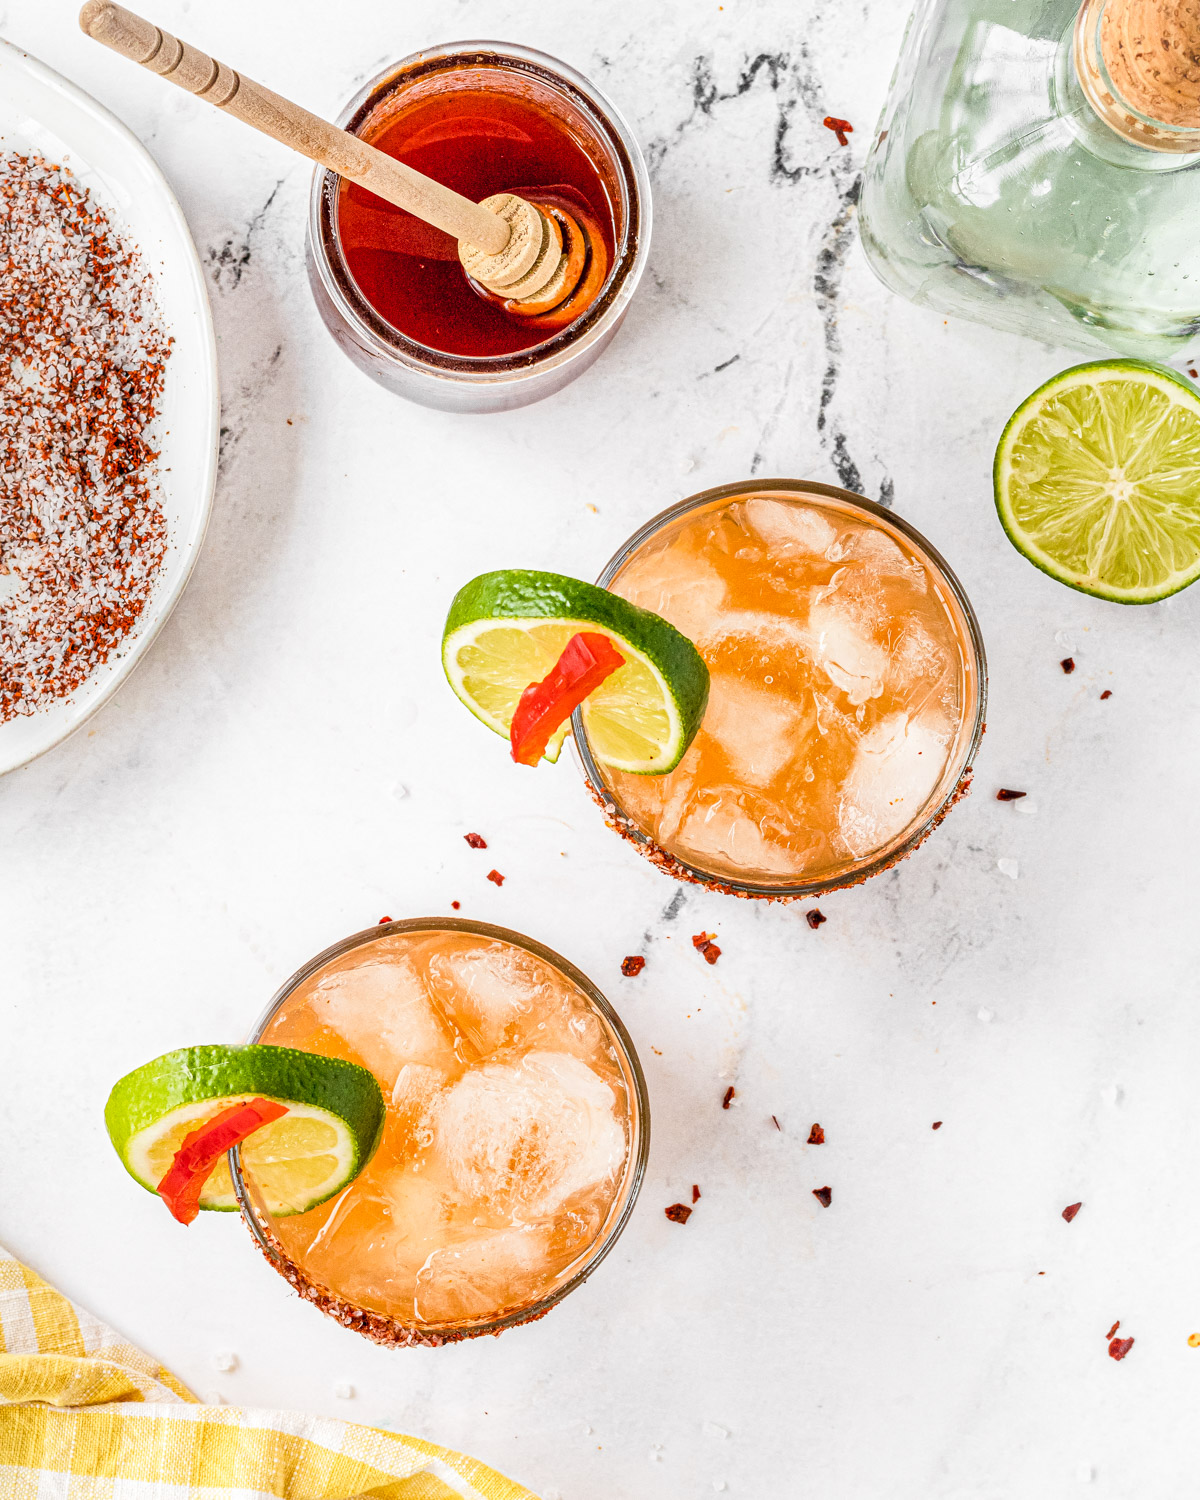 Overhead shot of two margaritas, with hot honey, chili-salt mixture, tequila and lime framing the image.